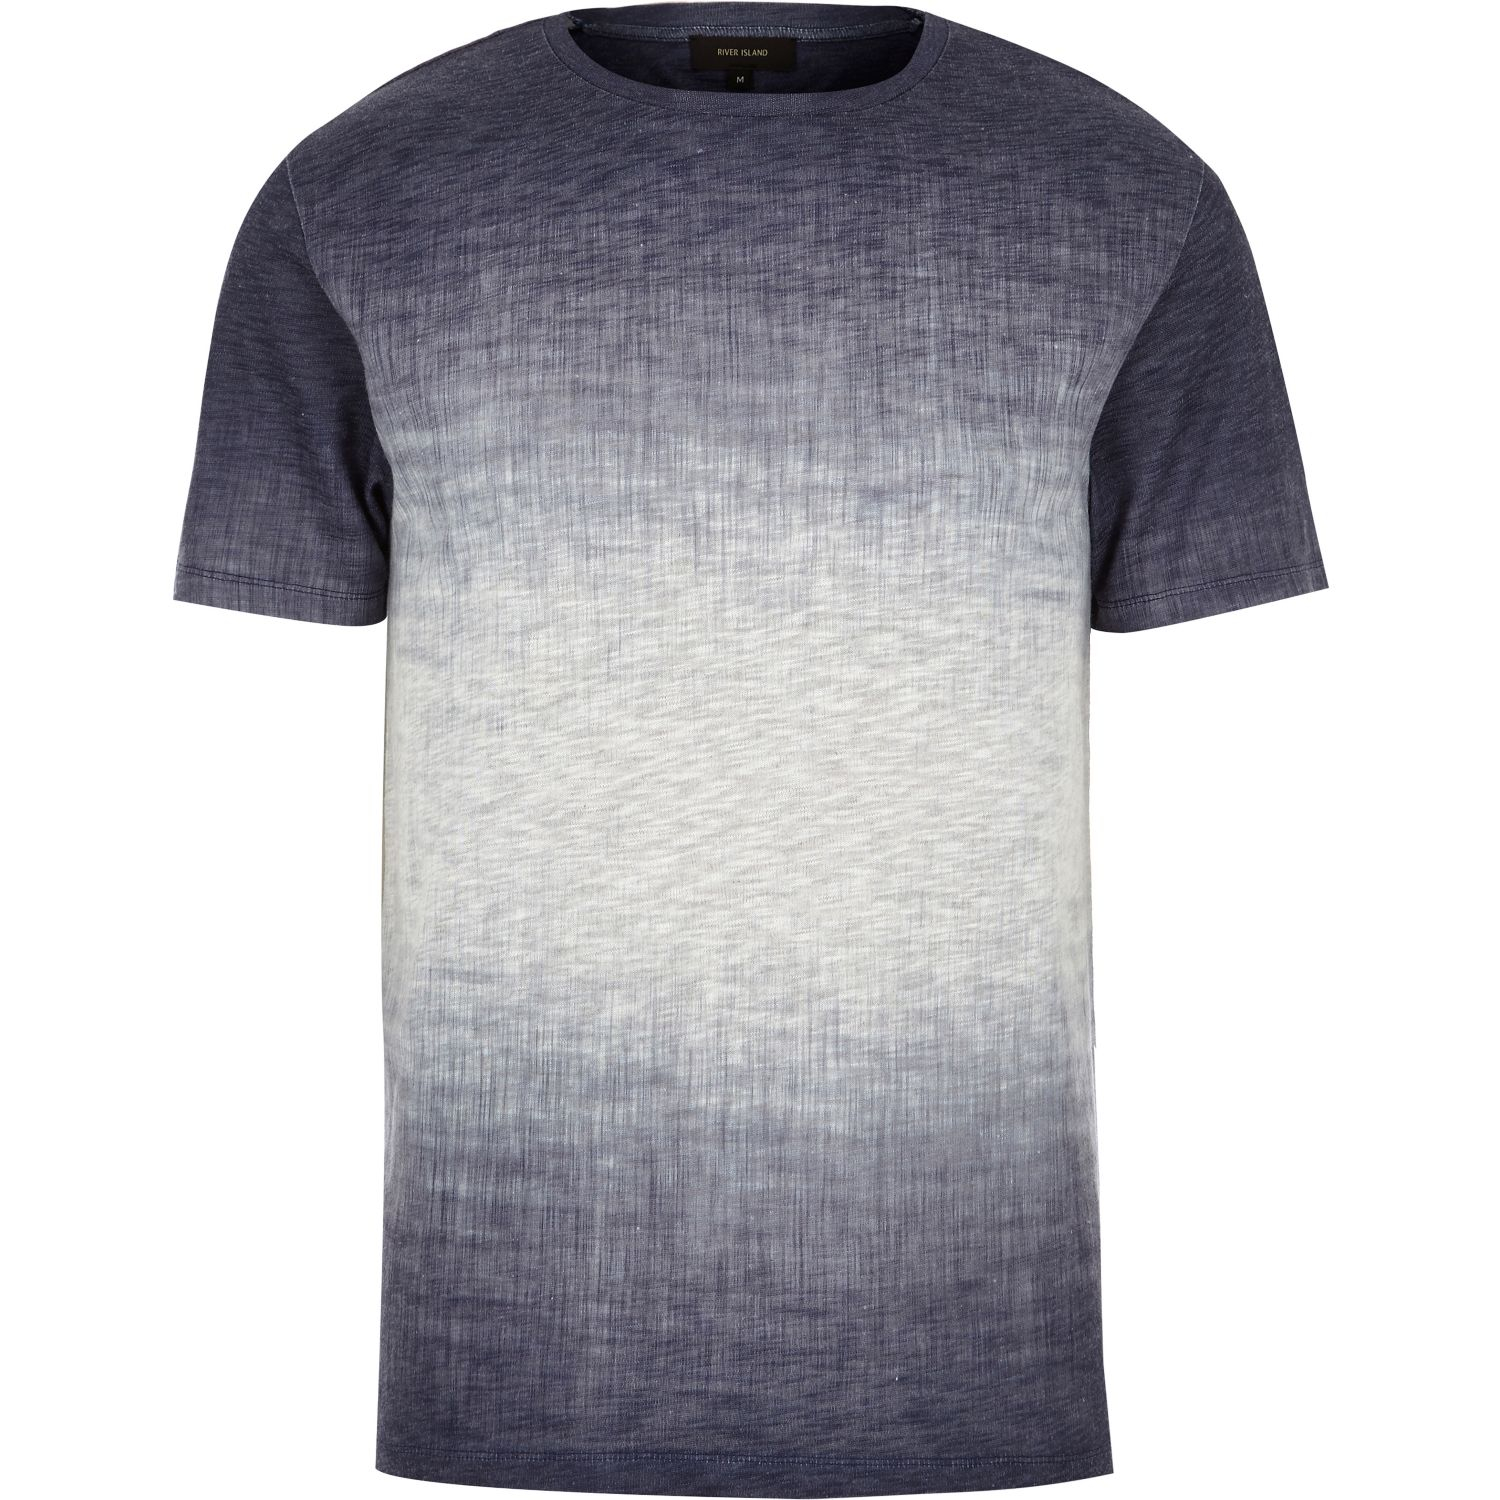 River island navy faded texture t shirt in blue for men lyst for Faded color t shirts